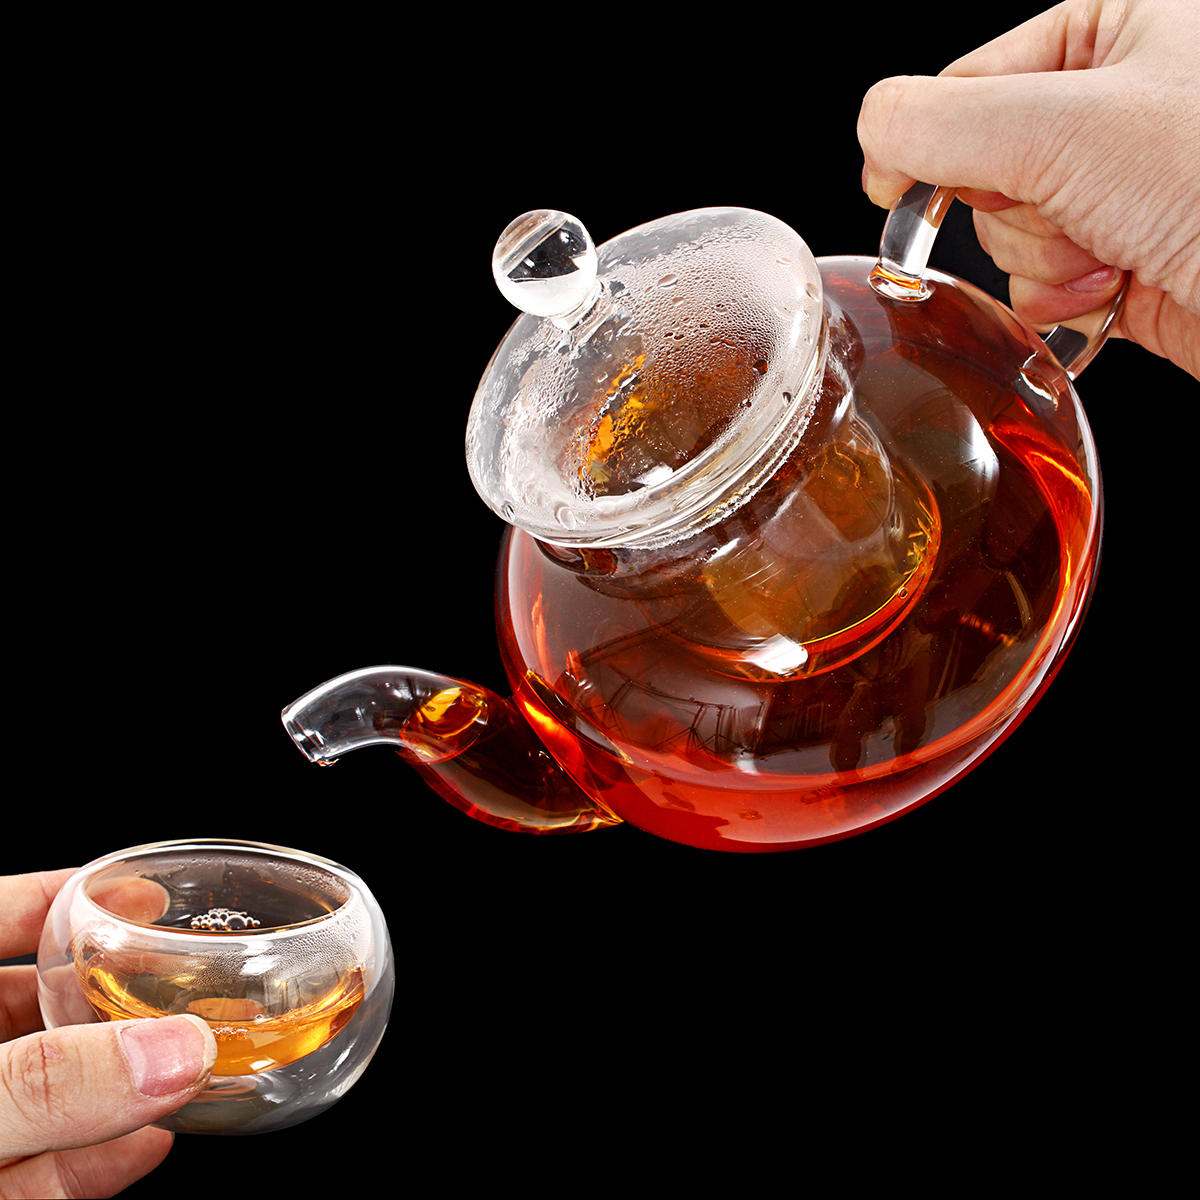 8 Pcs/Set Clear Glass Tea Double Wall Teapot & Cup Filtering Drink Home Decor - 3